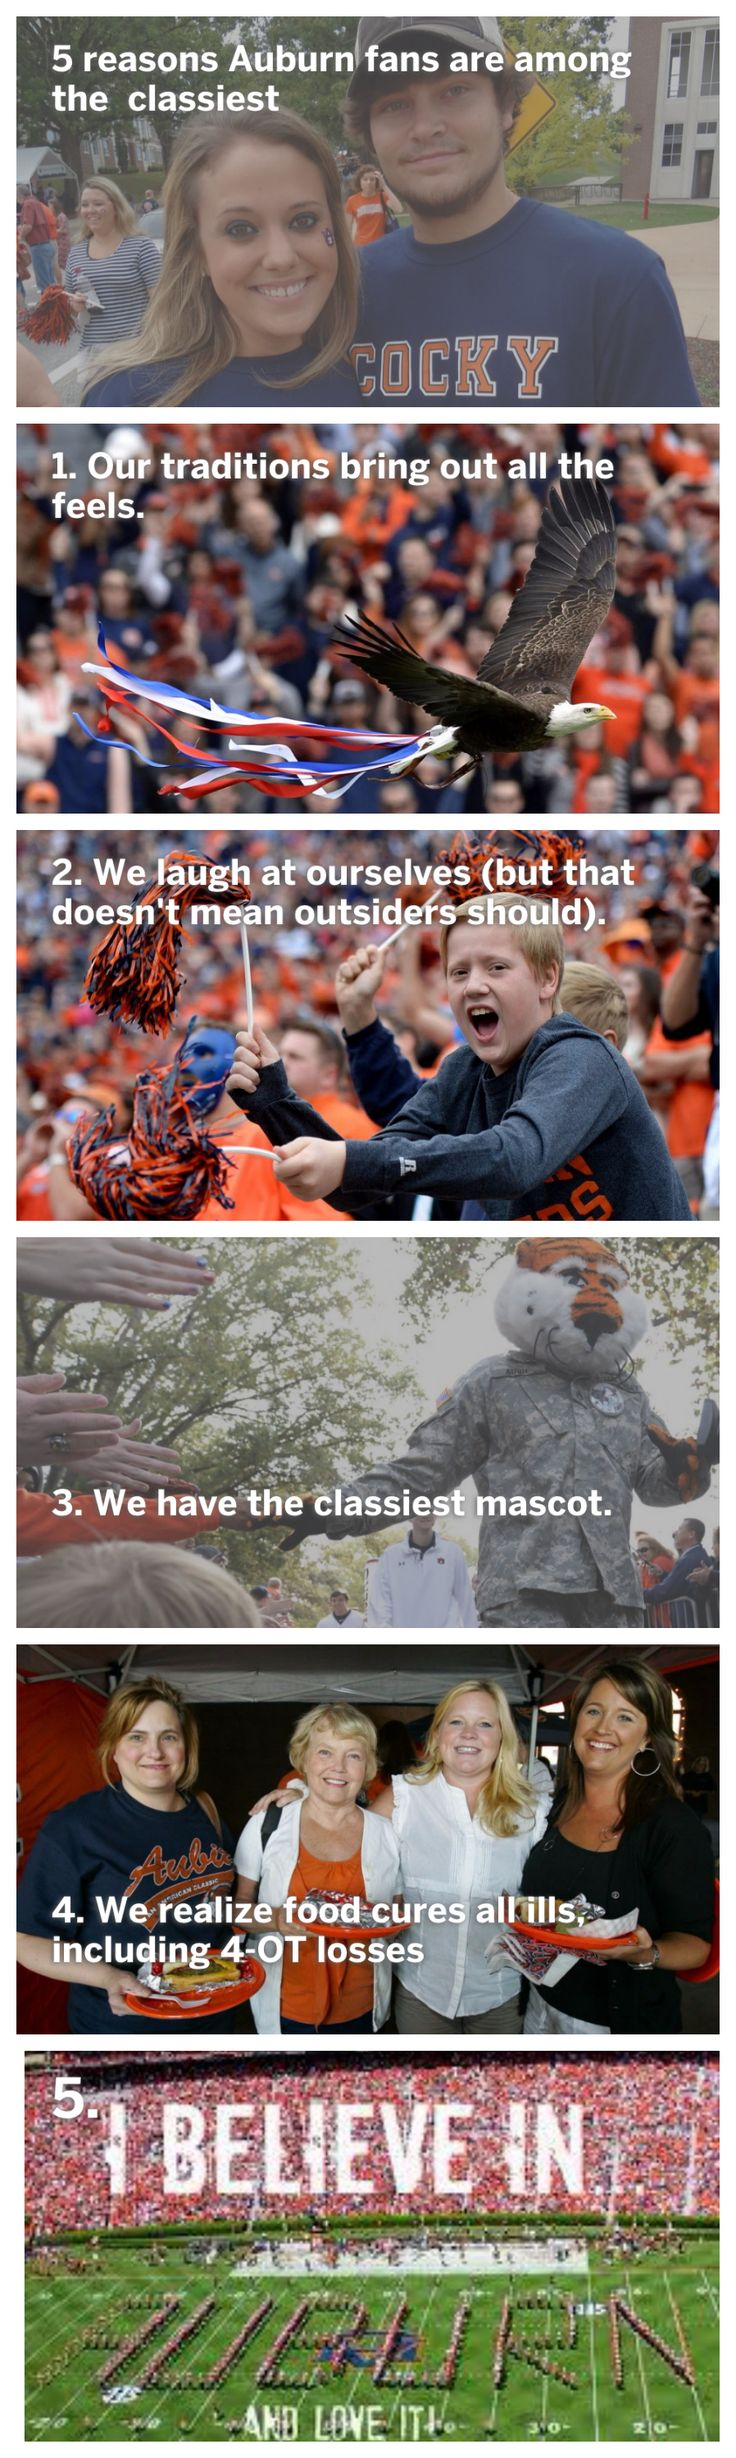 Article says Auburn fans are classiest. War a eagle!